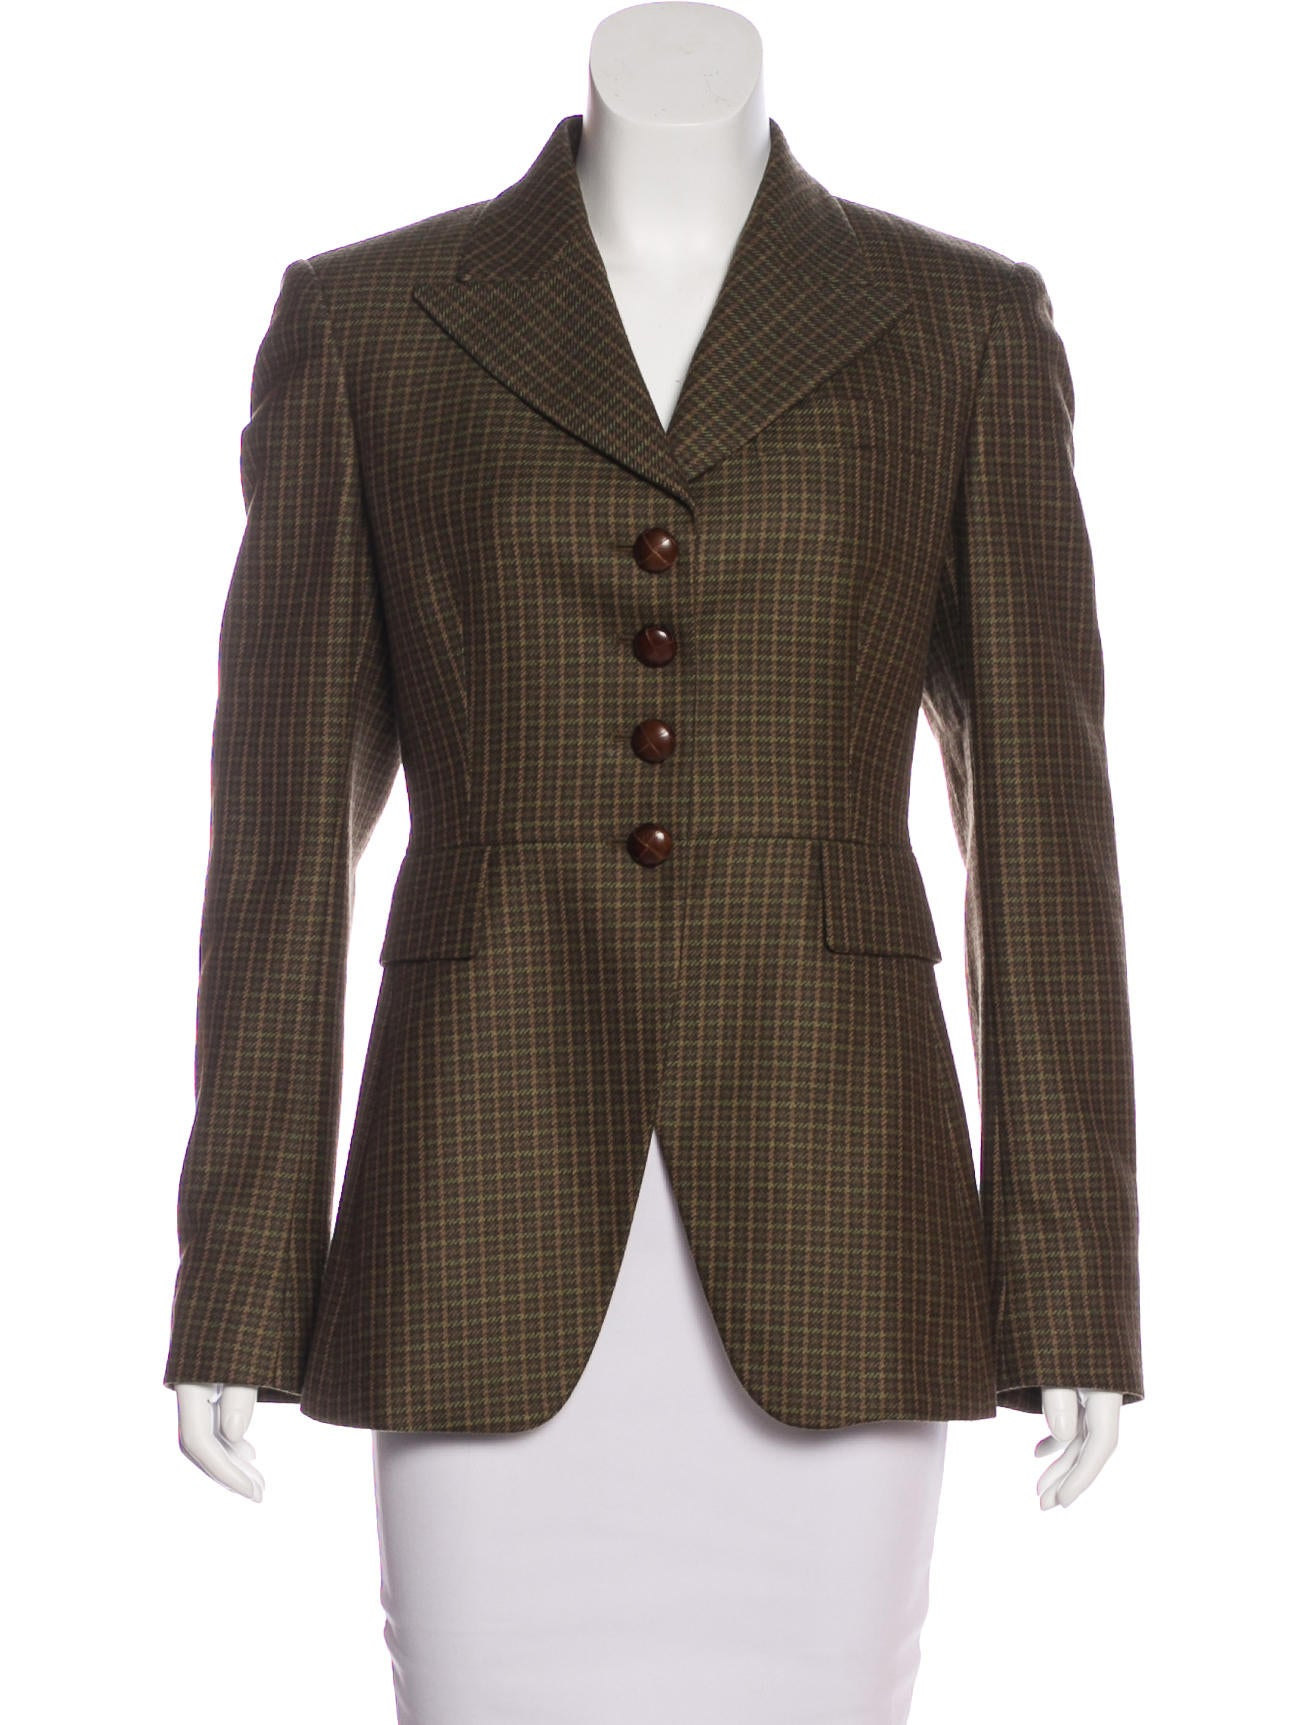 michael kors peak lapel check blazer clothing mic56298 the realreal. Black Bedroom Furniture Sets. Home Design Ideas